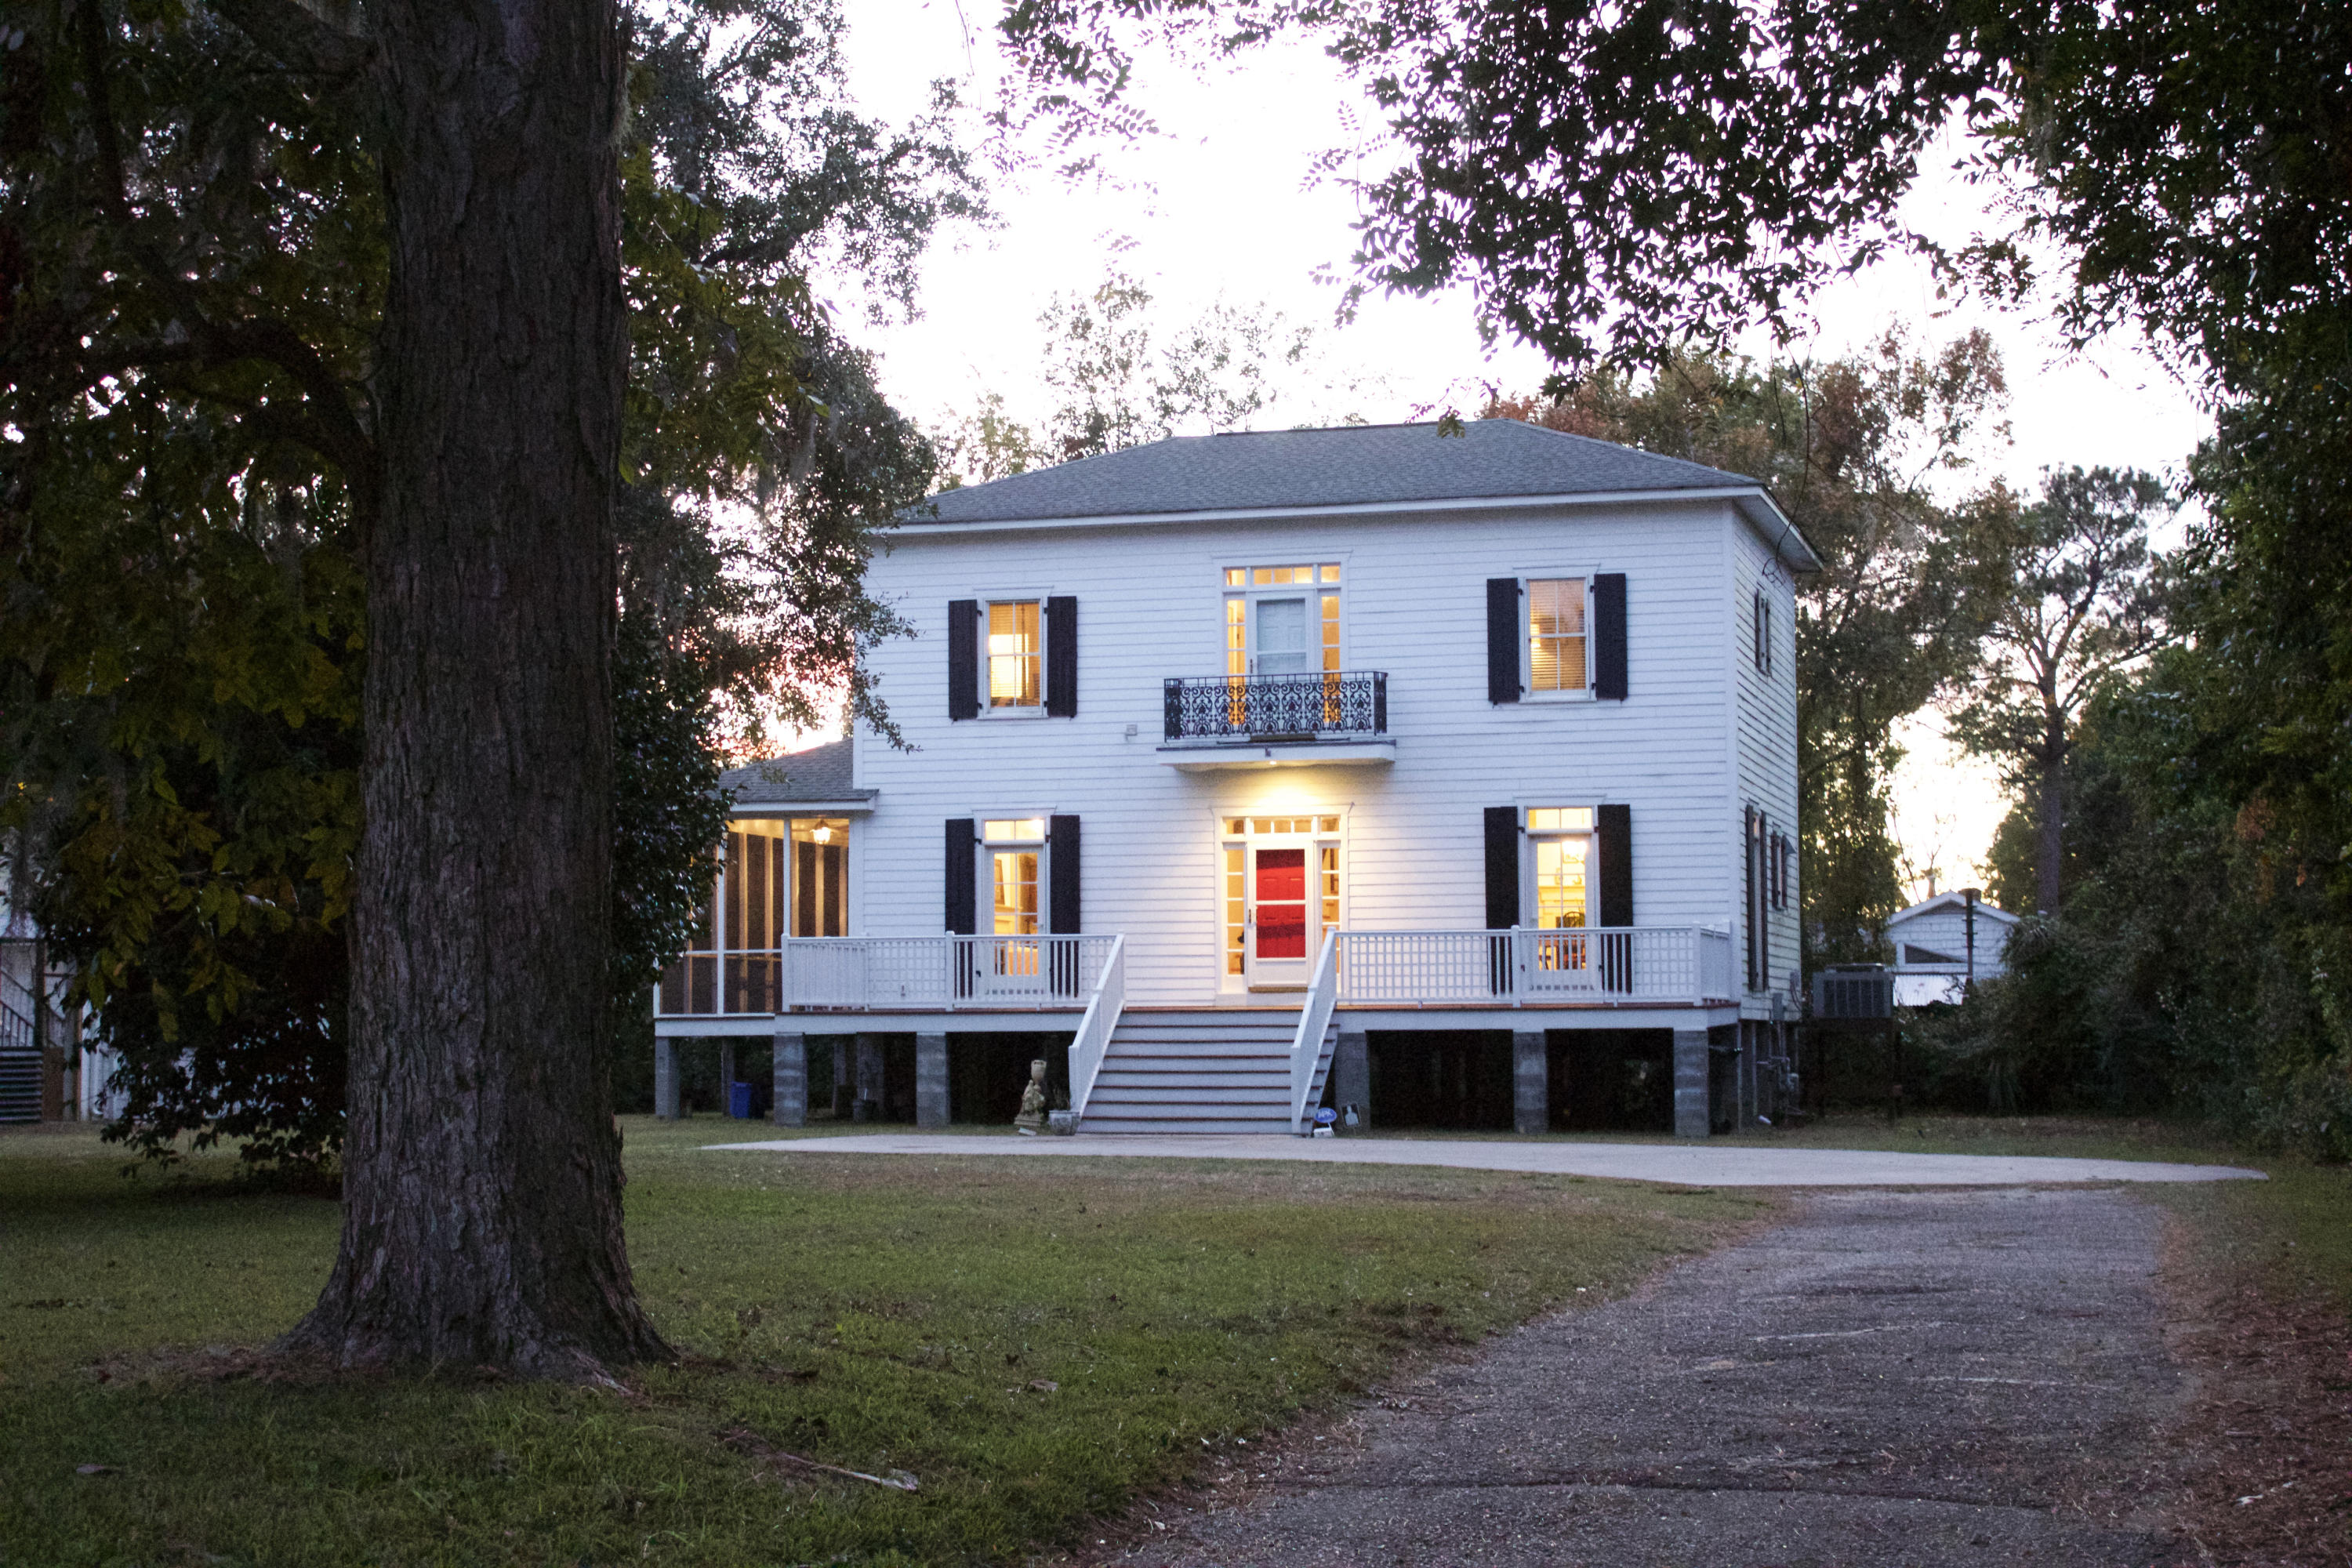 Photo of 134 Folly Rd Blvd, Charleston, SC 29407